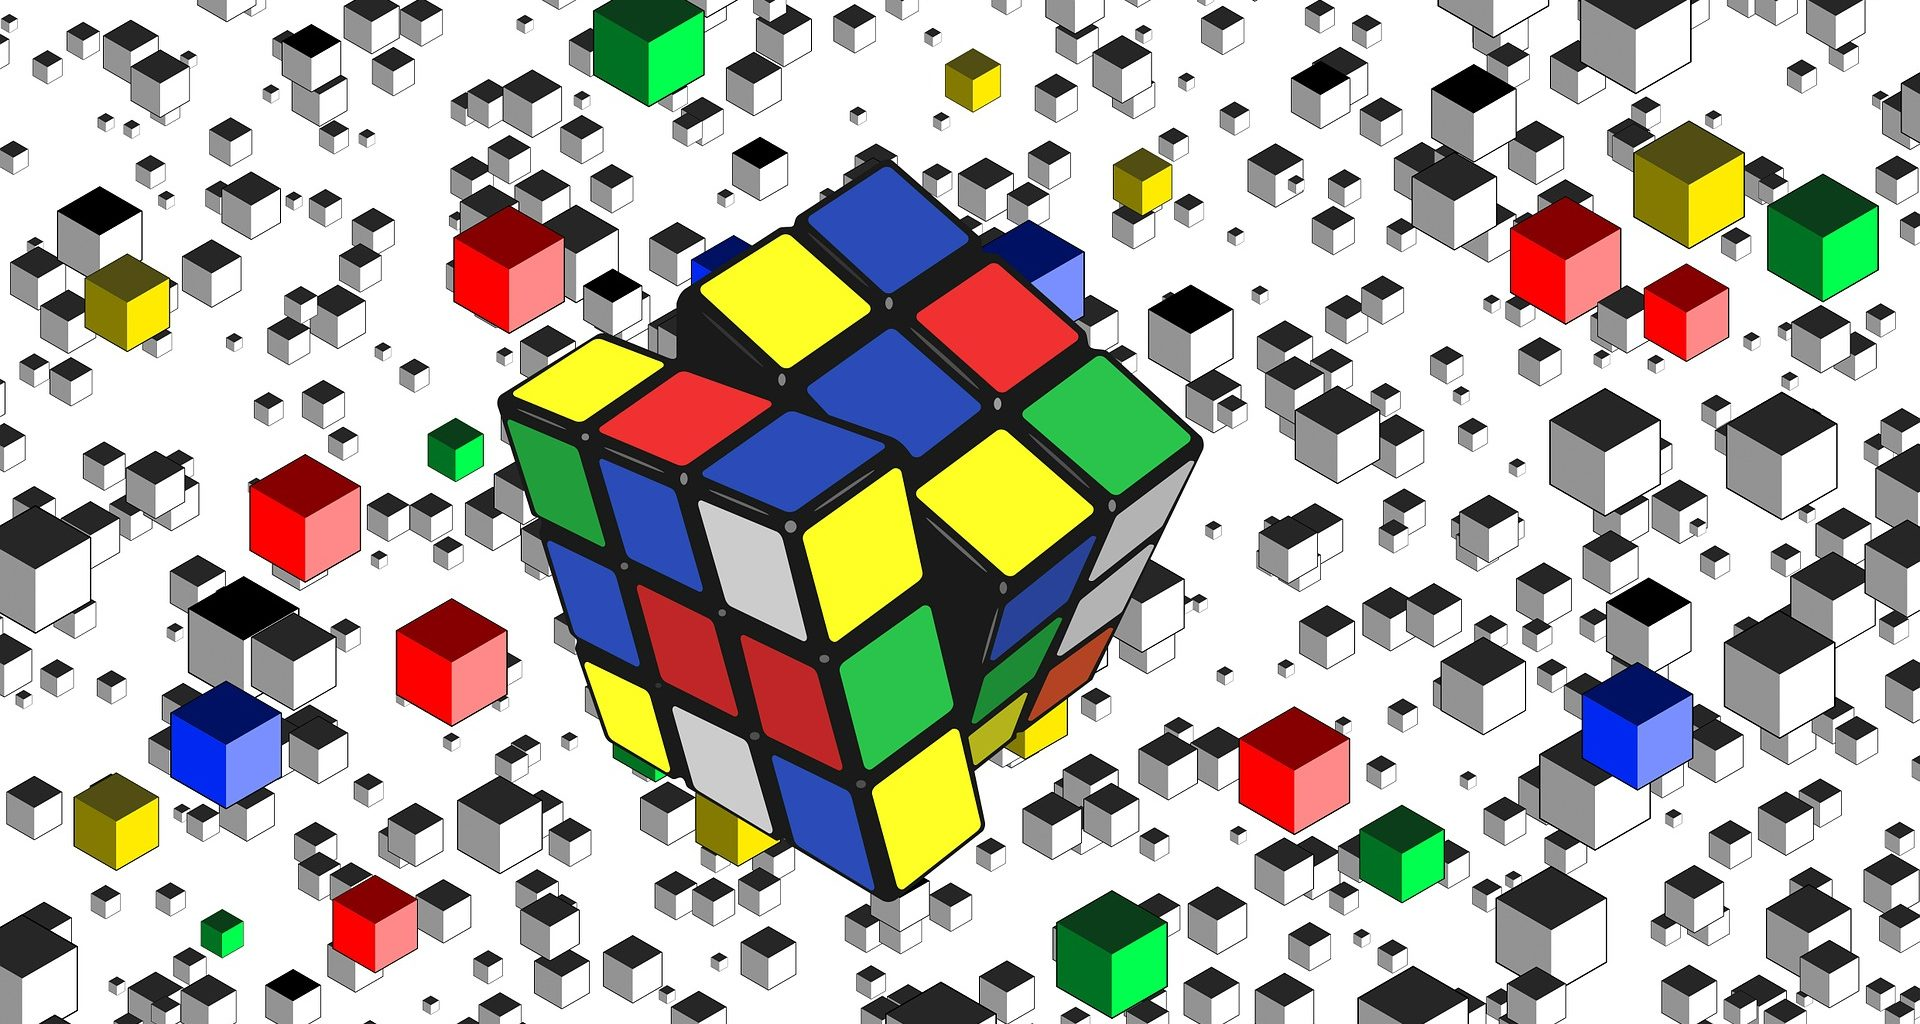 Rubik's Cube Hungarian invention